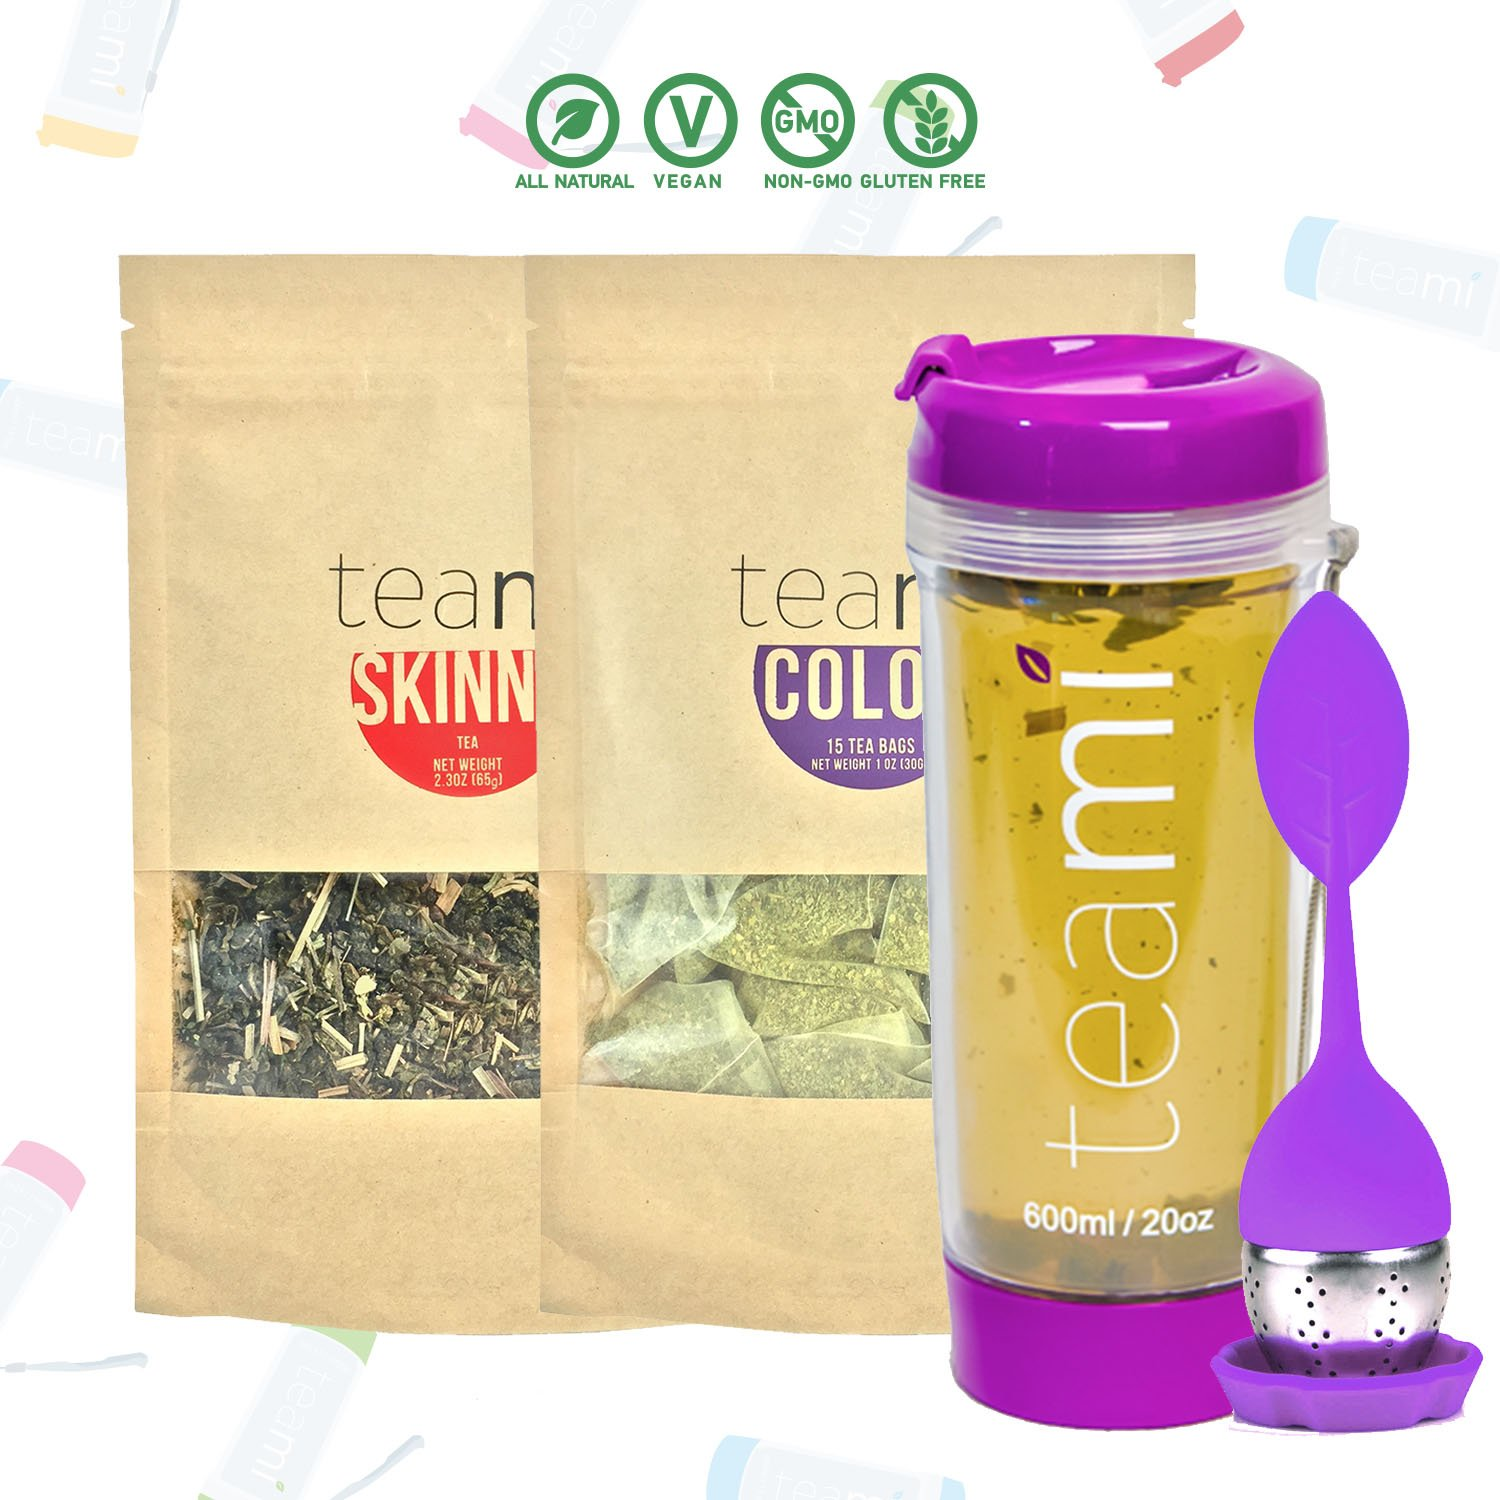 Teami® 30-Day Detox Tea Starter Pack: All-Natural Teatox Kit with Teami Skinny & Teami Colon Cleanse Loose Leaf Herbal Teas (w/20oz Purple Tumbler and Infuser)